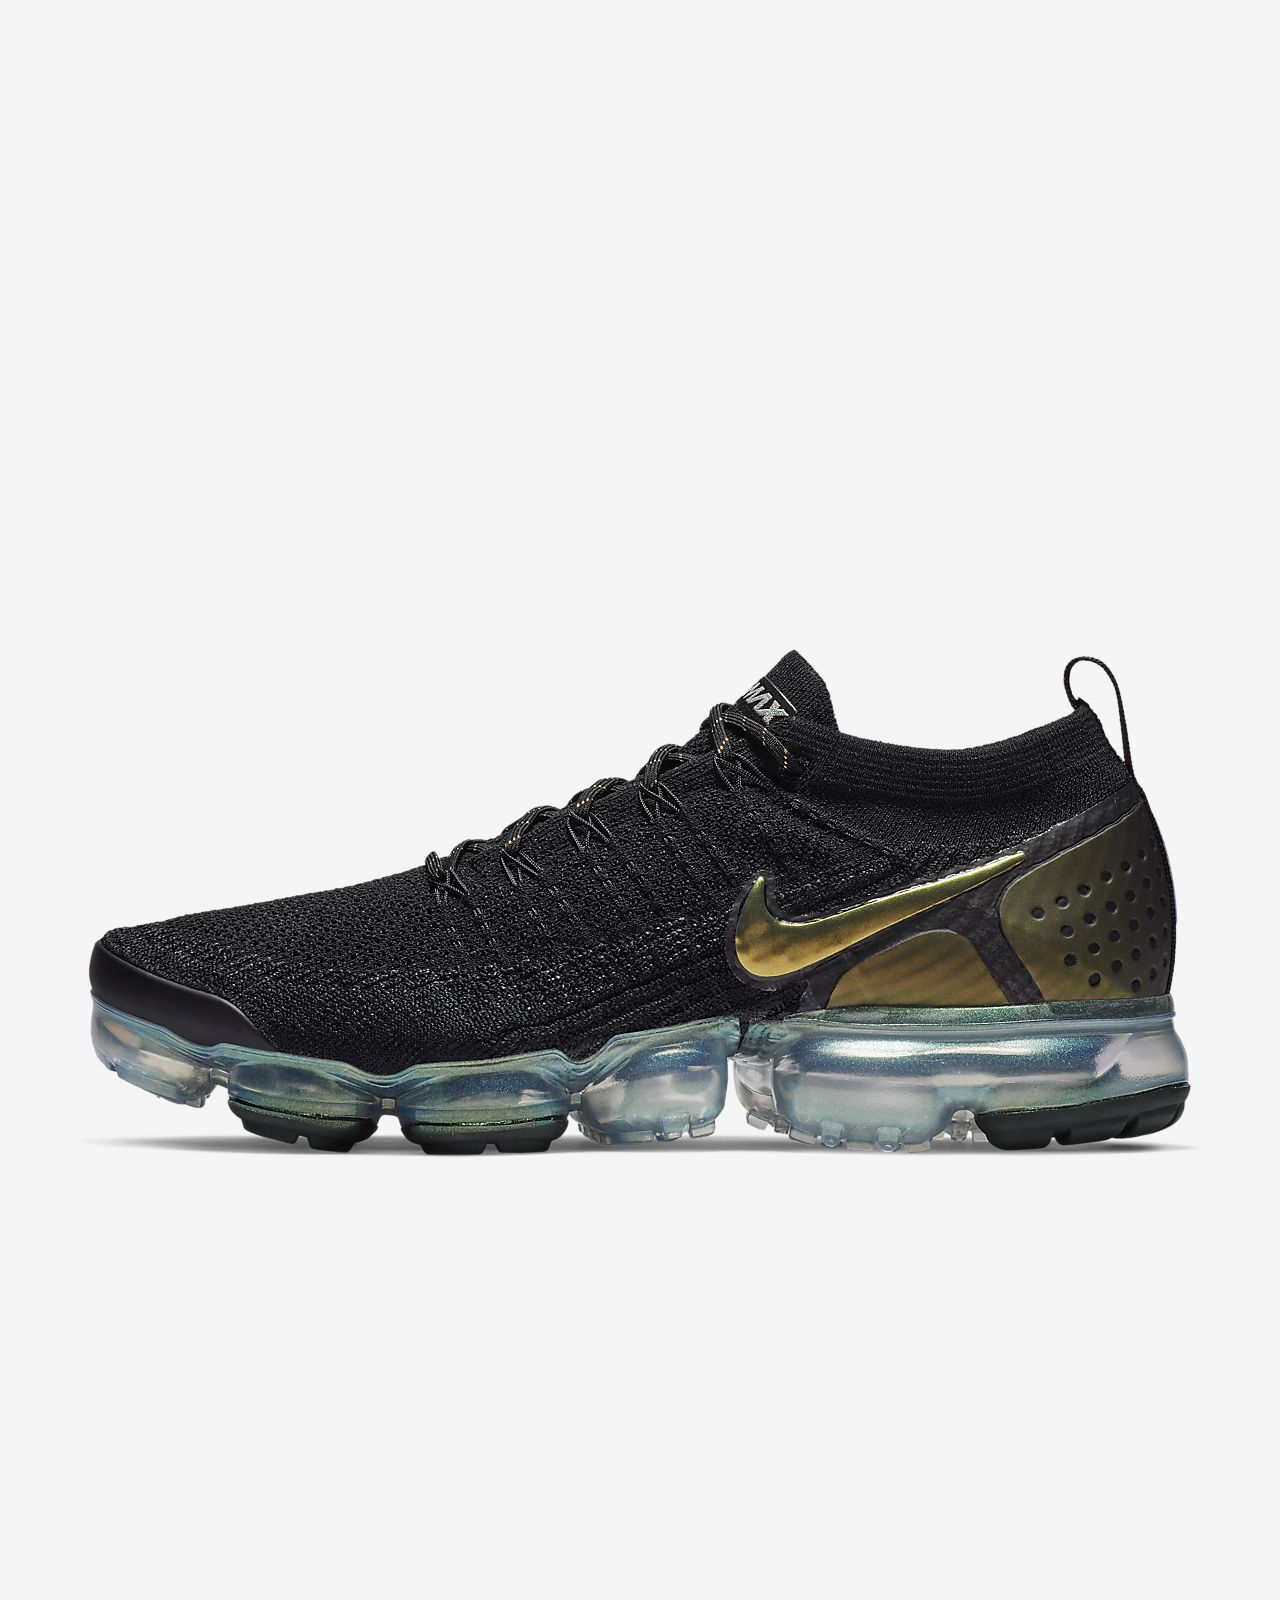 new arrival 87f73 bf889 Calzado Nike Air VaporMax Flyknit 2